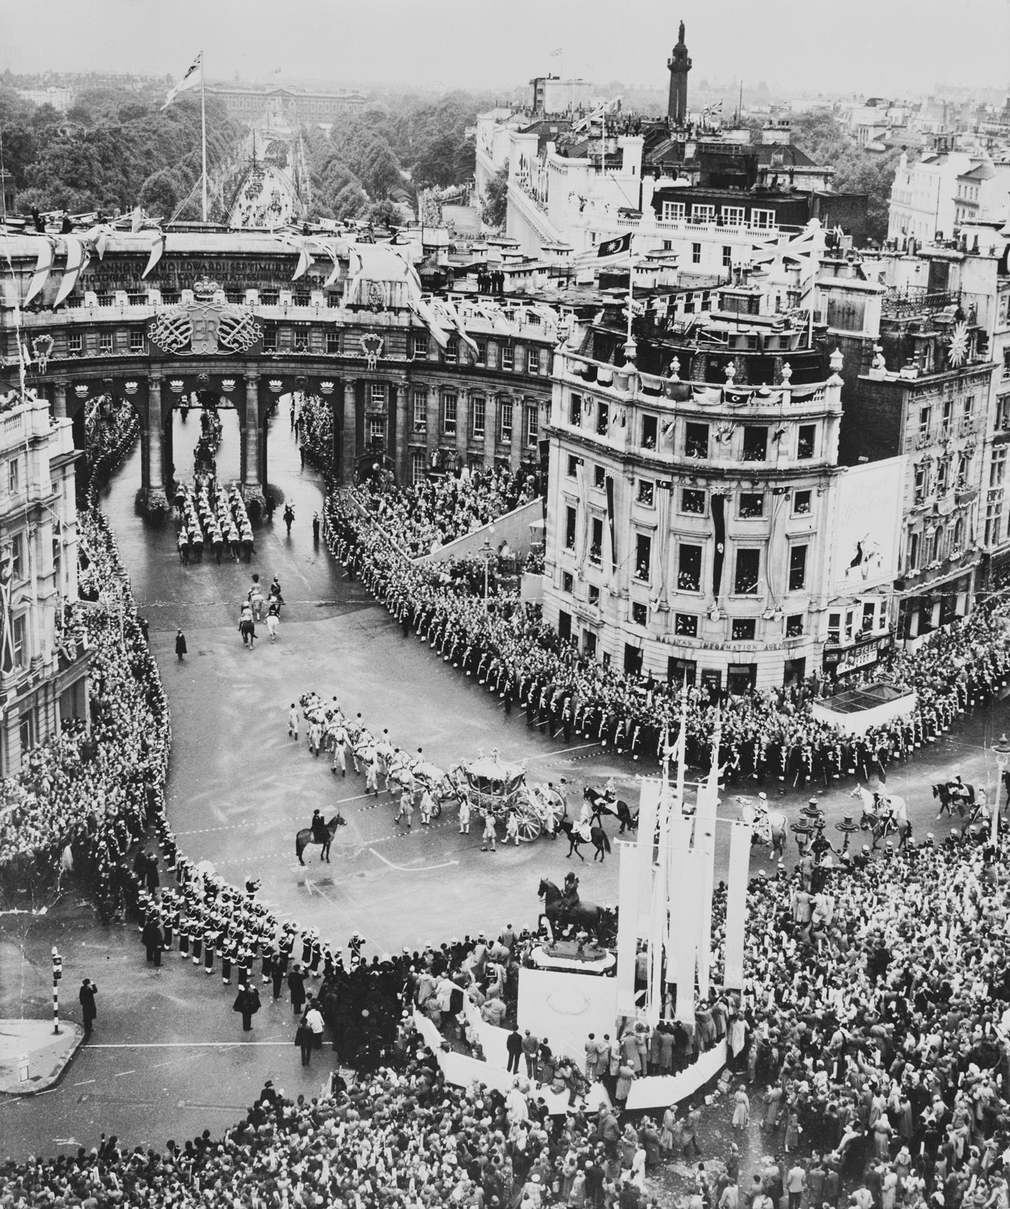 Photograph shows the Gold State Coach carrying The Queen as it passes through Trafalgar Square enroute to Buckingham Palace after the Coronation Ceremony in Westminster Abbey, pass cheering crowds